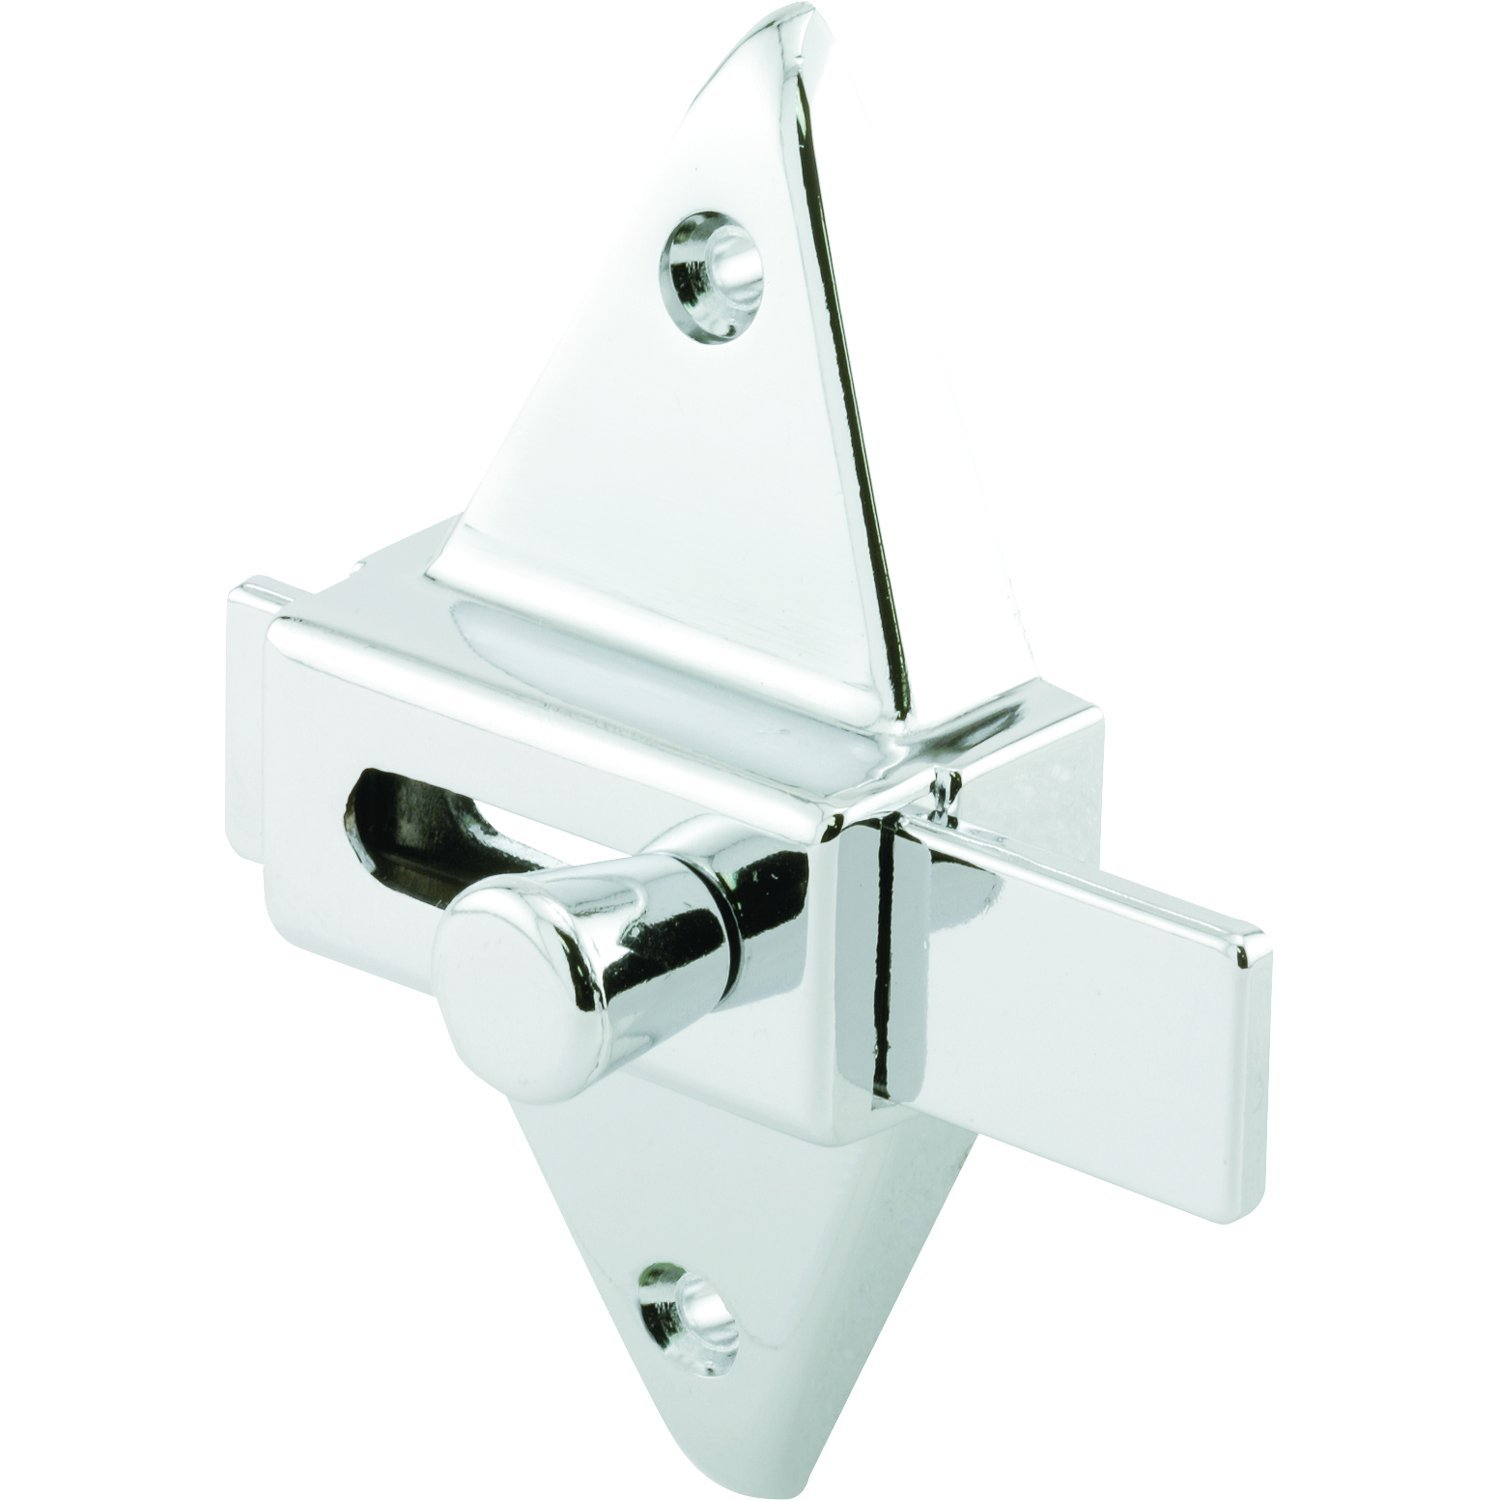 Prime-Line Products PH 17039 Slide Latch, 2-3/4 In. Hole Centers, Diecast Construction, Chrome Plated